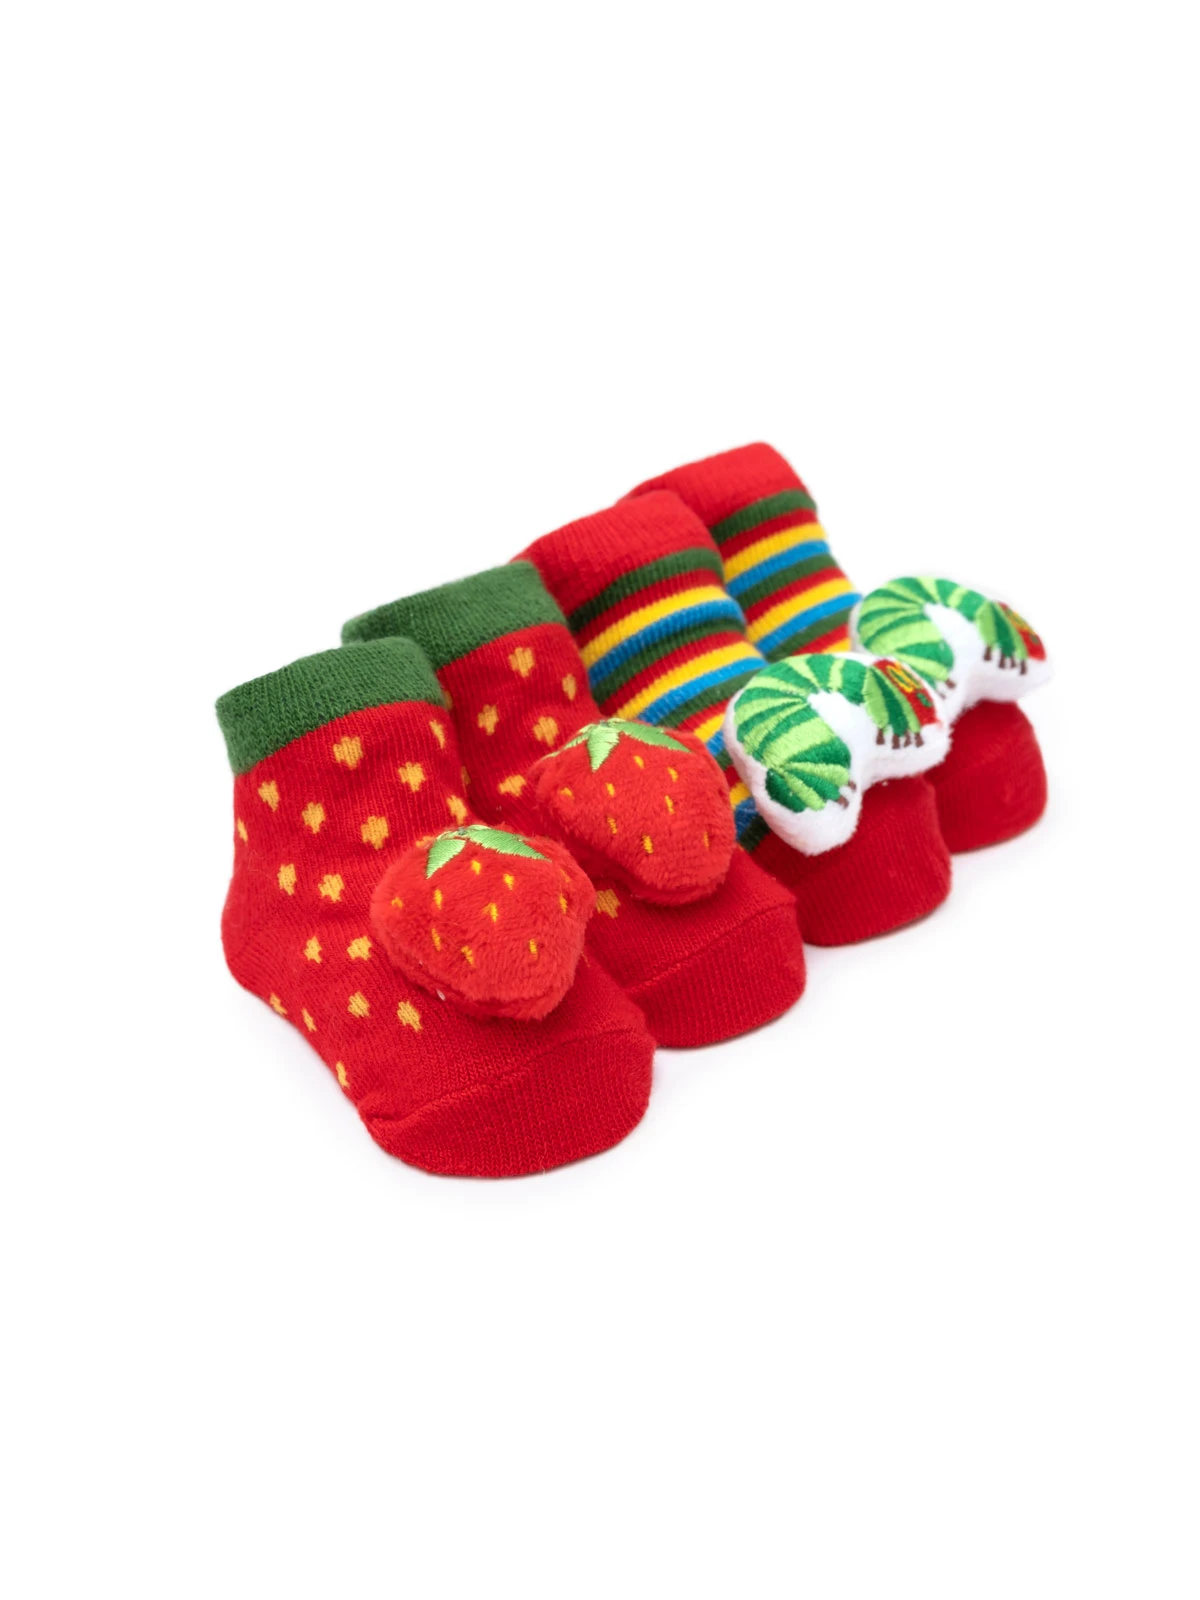 The Very Hungry Caterpillar Bootie Pairs